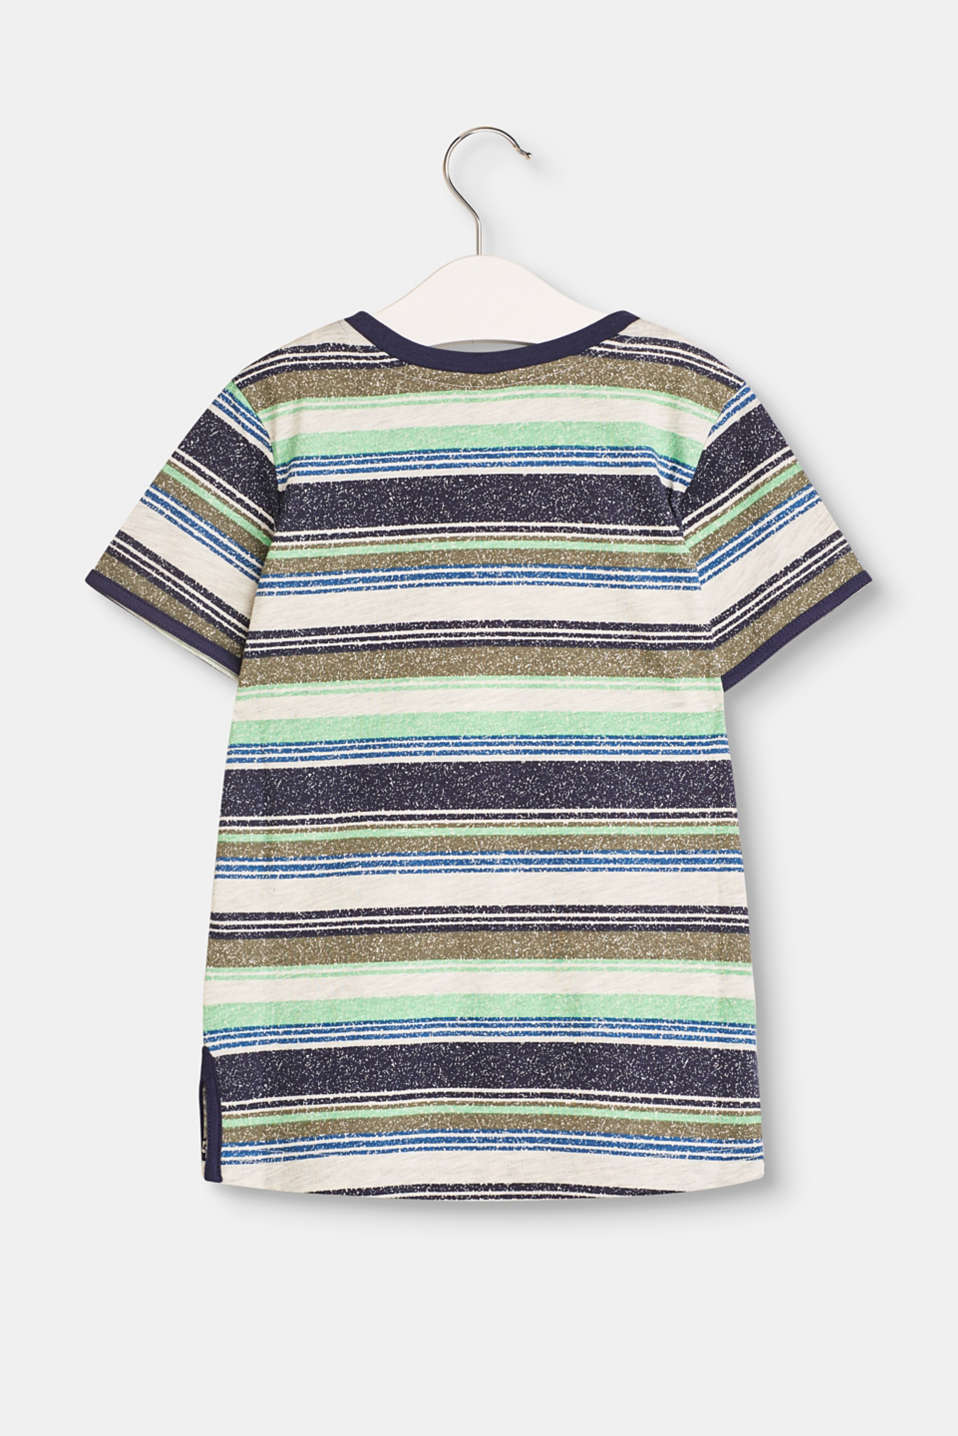 Striped top with a breast pocket